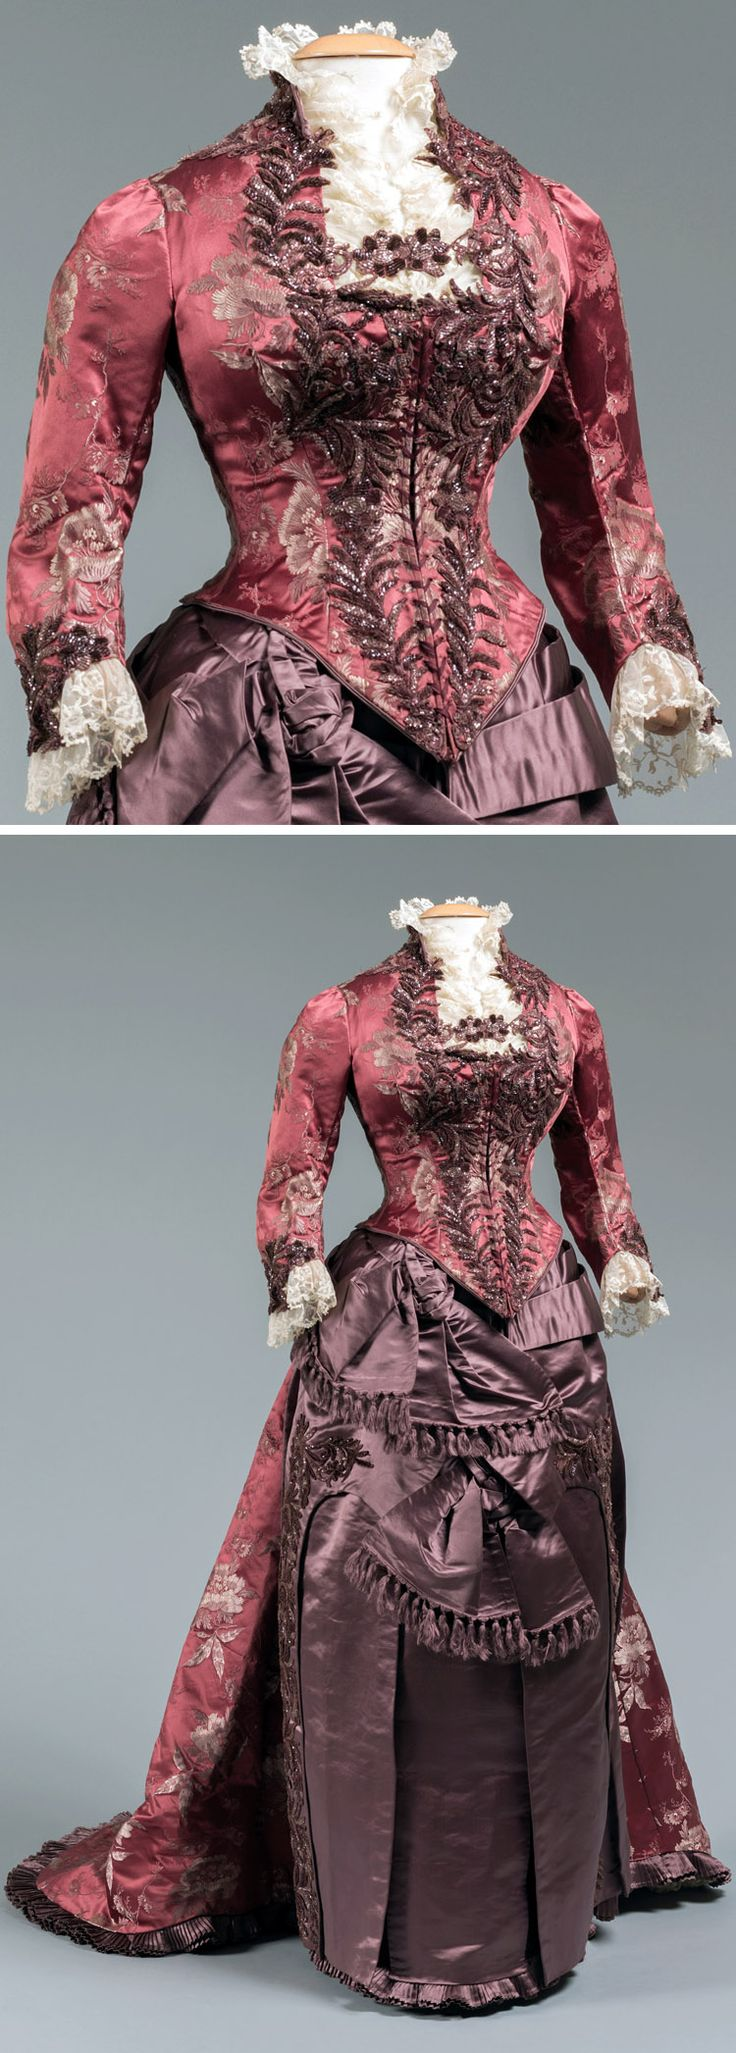 "Dinner dress, Levillon, Paris, ca. 1875. Burgundy silk brocade and purple silk satin with beadwork. Western Reserve Historical Society: ""This two-piece dress of rich tones in complimentary textures embodies the Victorian belief that dress should add to one's elegance. It was custom made in Paris."""